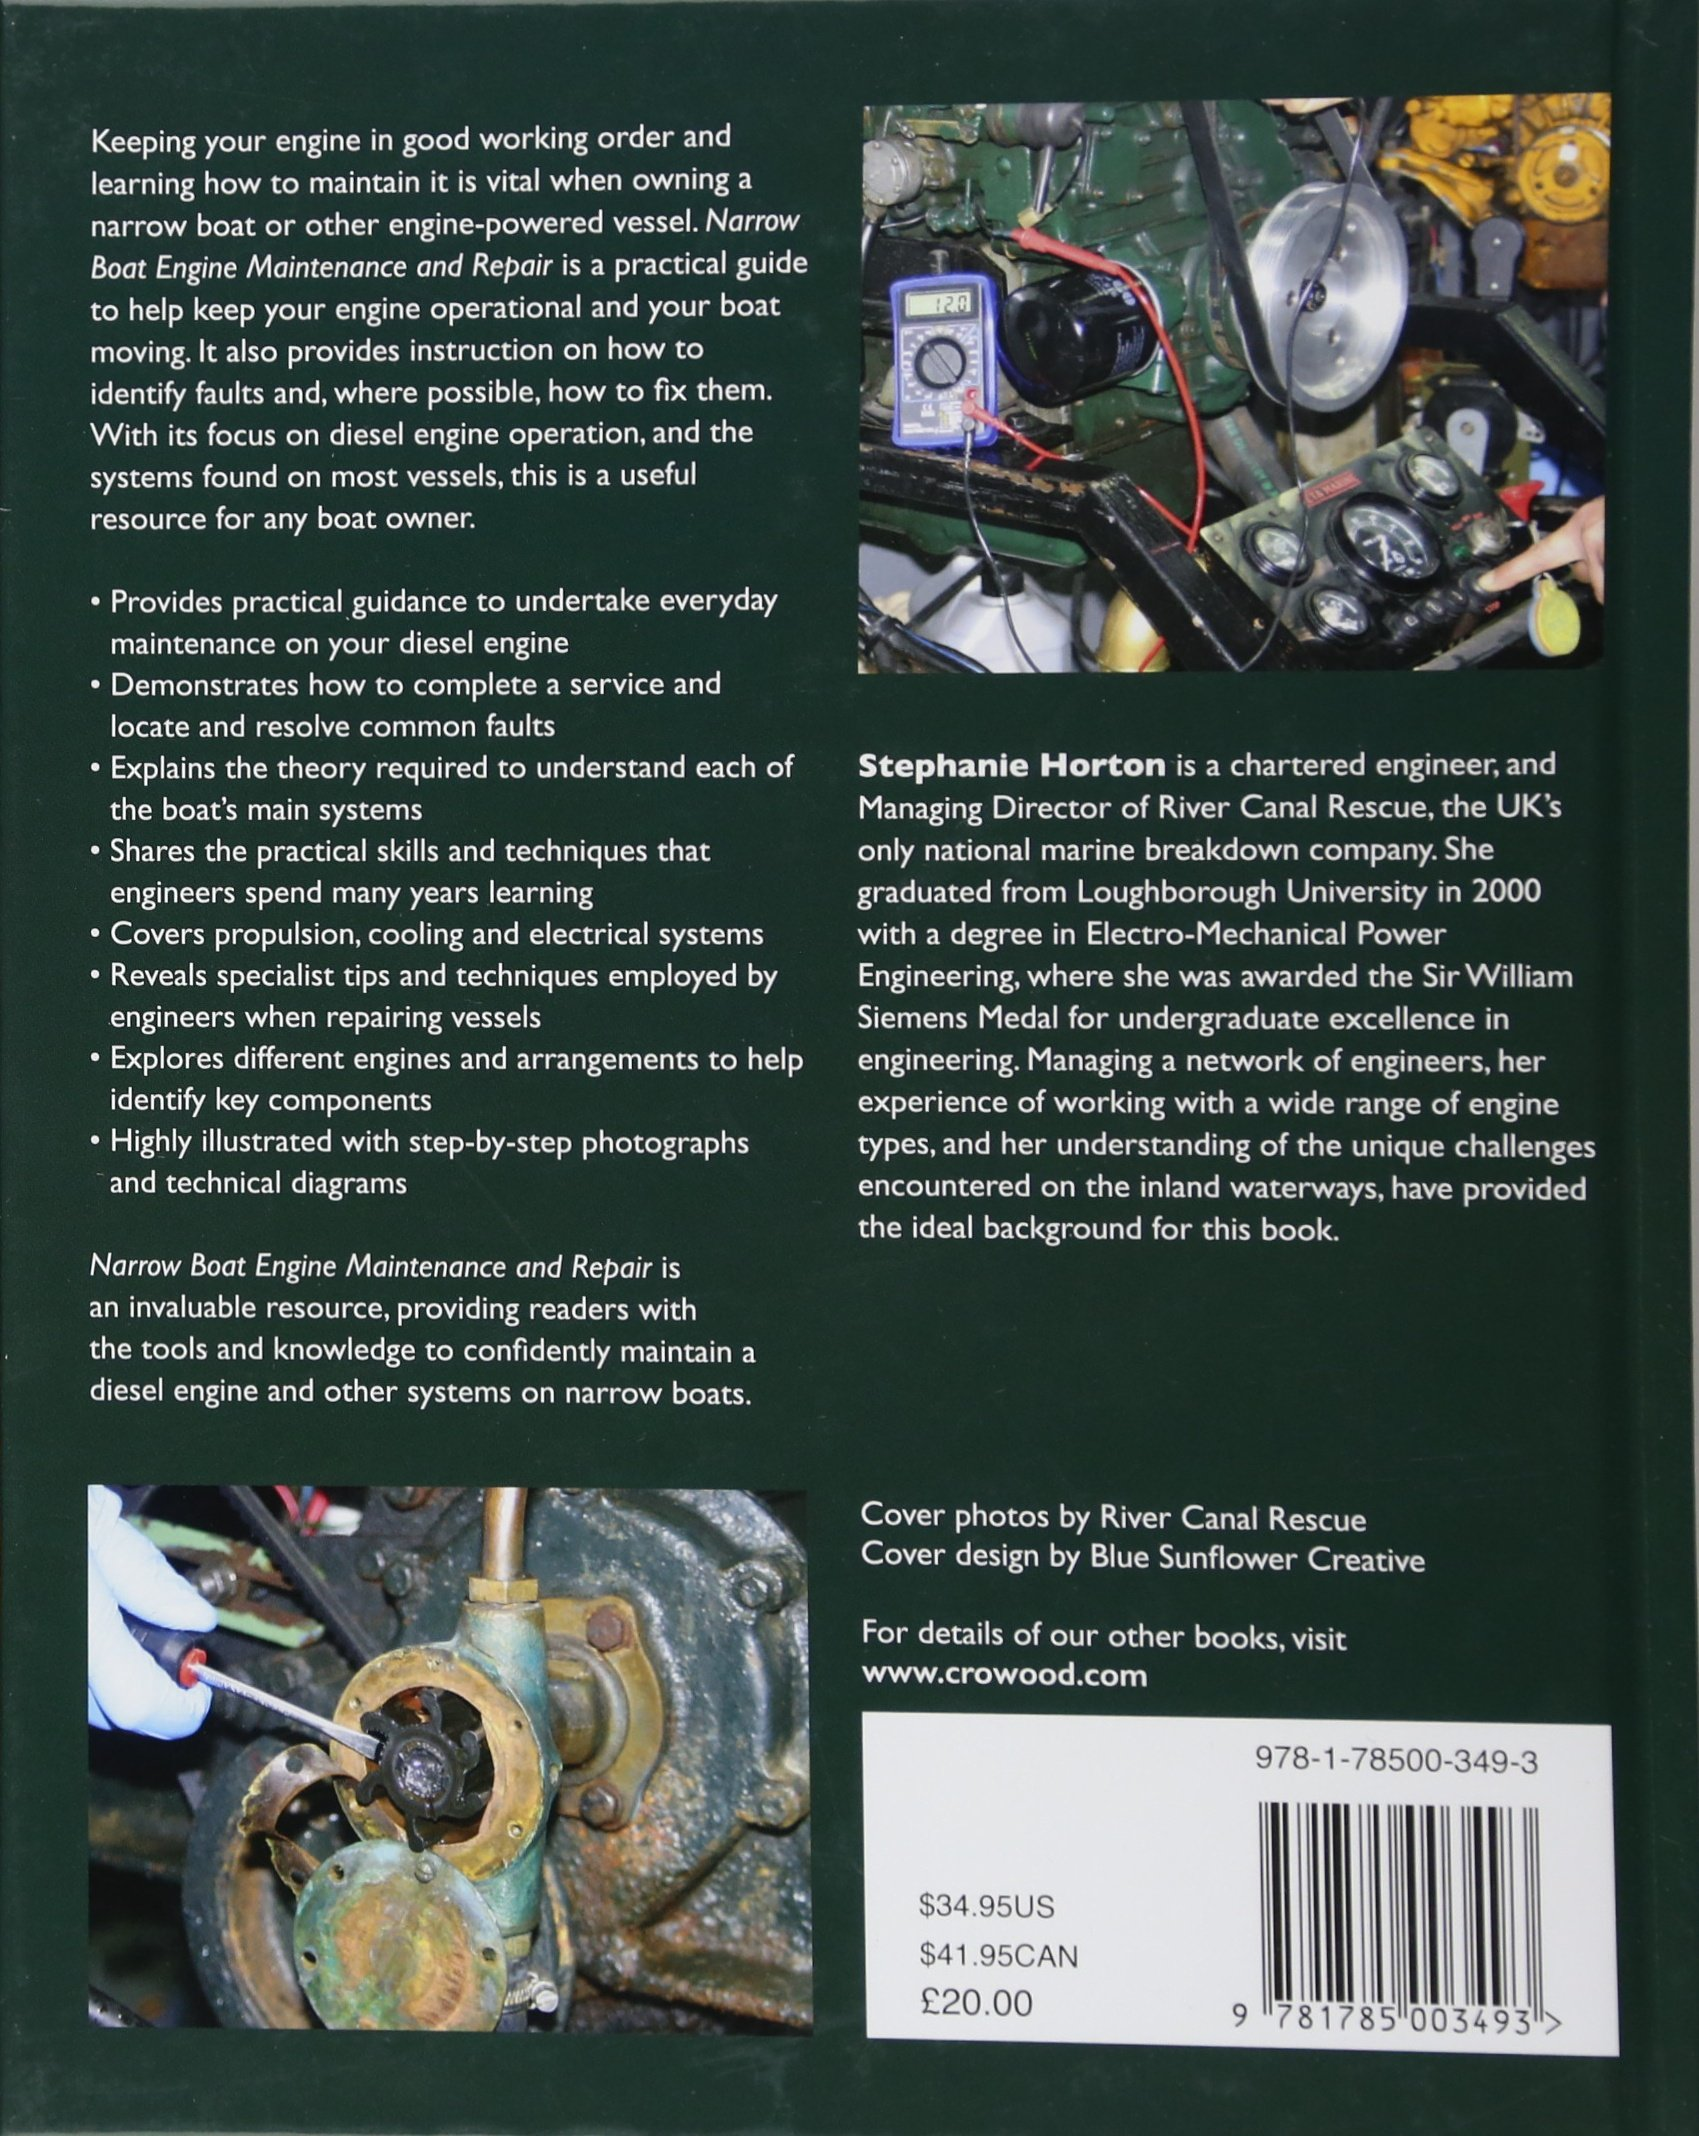 Narrow Boat Engine Maintenance and Repair by The Crowood Press UK